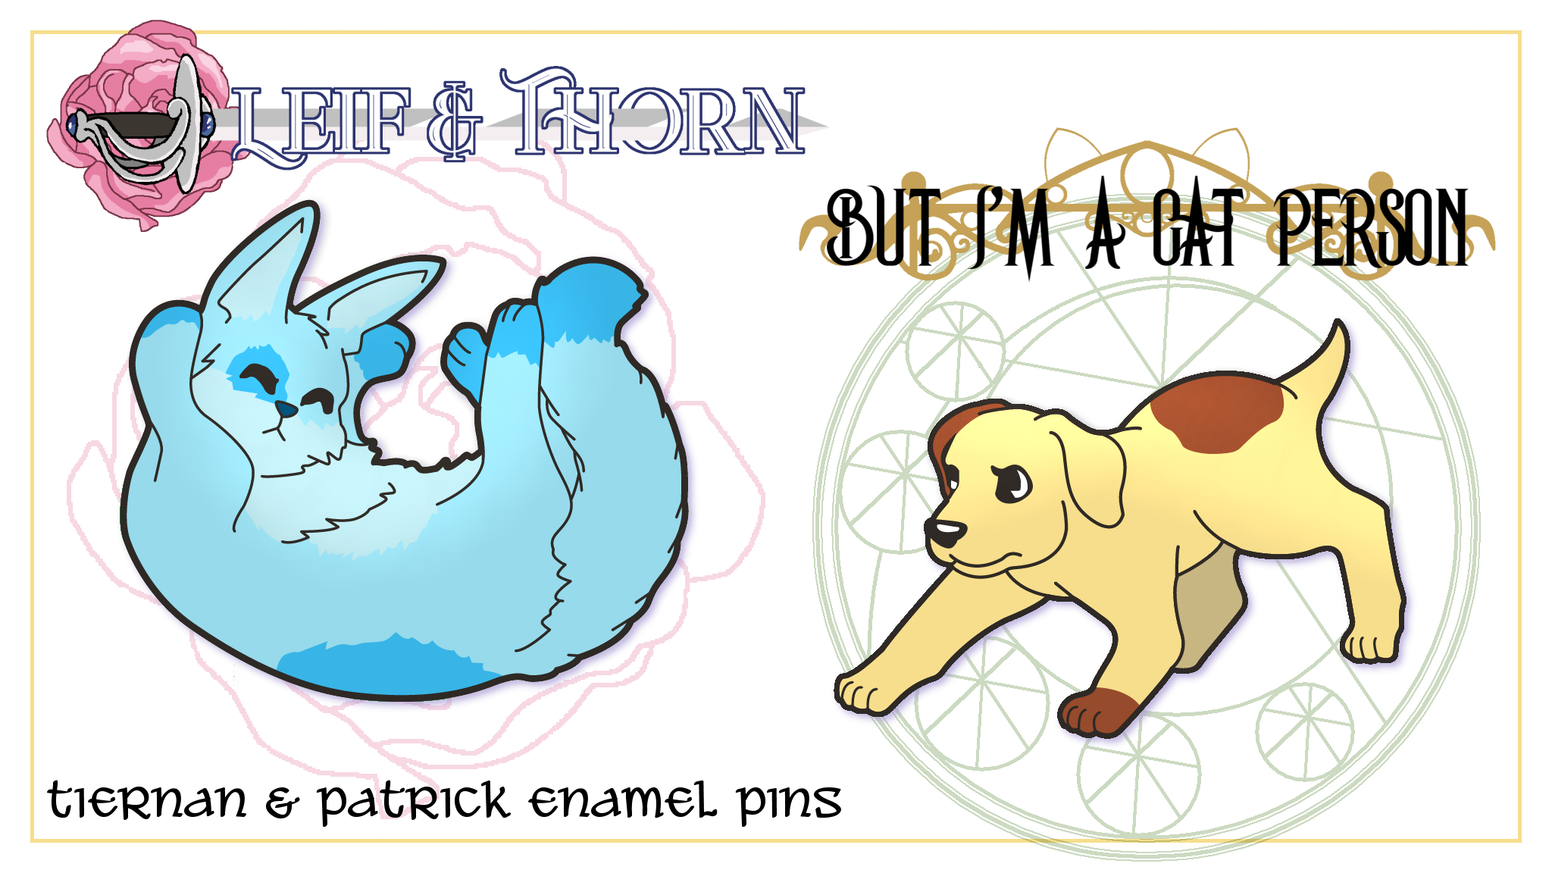 Adorable pins for webcomic mascots Patrick (But I'm A Cat Person) and Tiernan (Leif & Thorn).